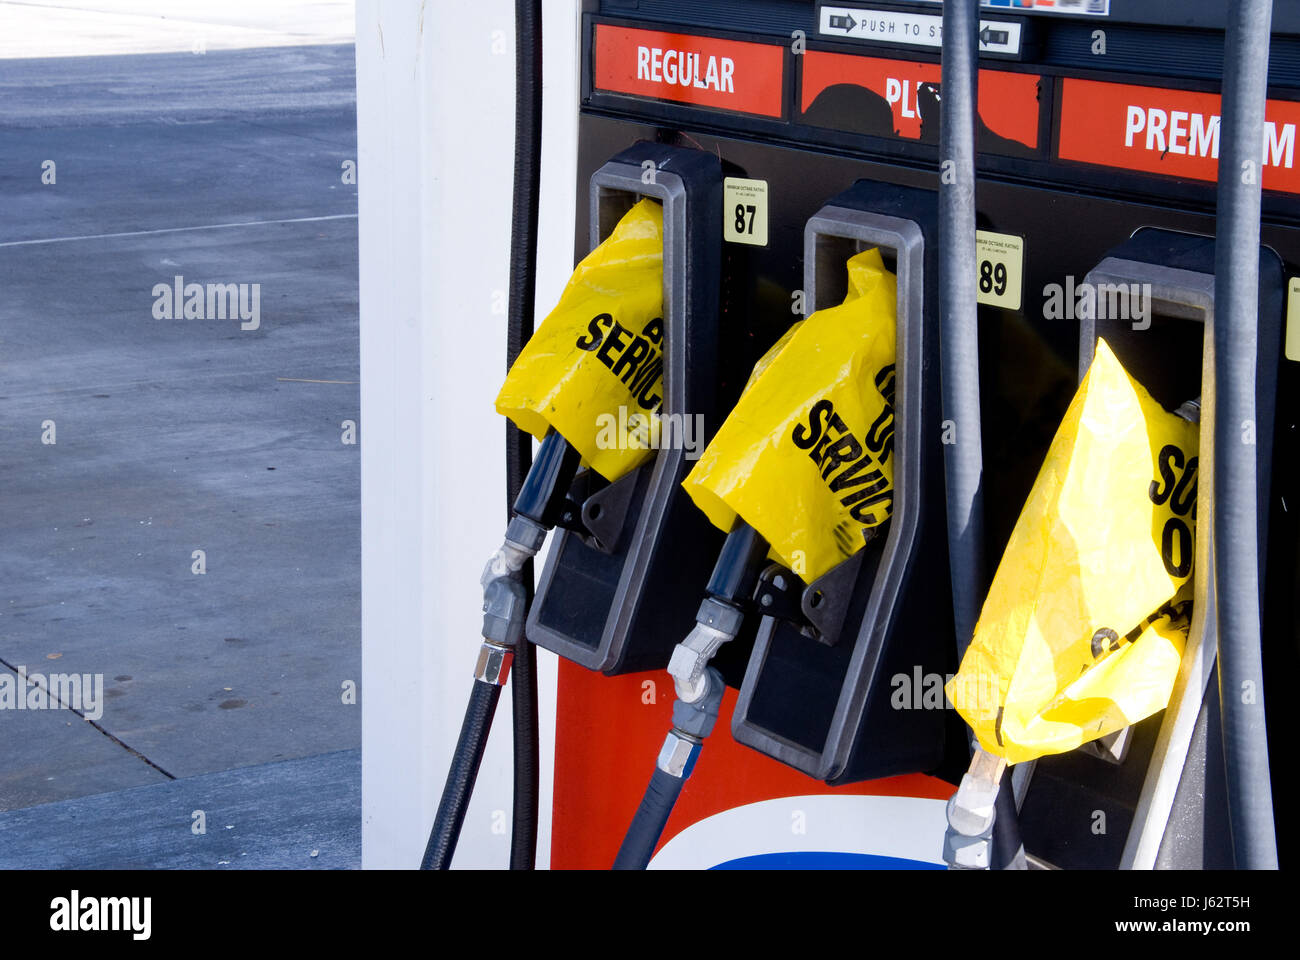 crisis gas empty petrol gasoline shortage oil pump station travel industry - Stock Image